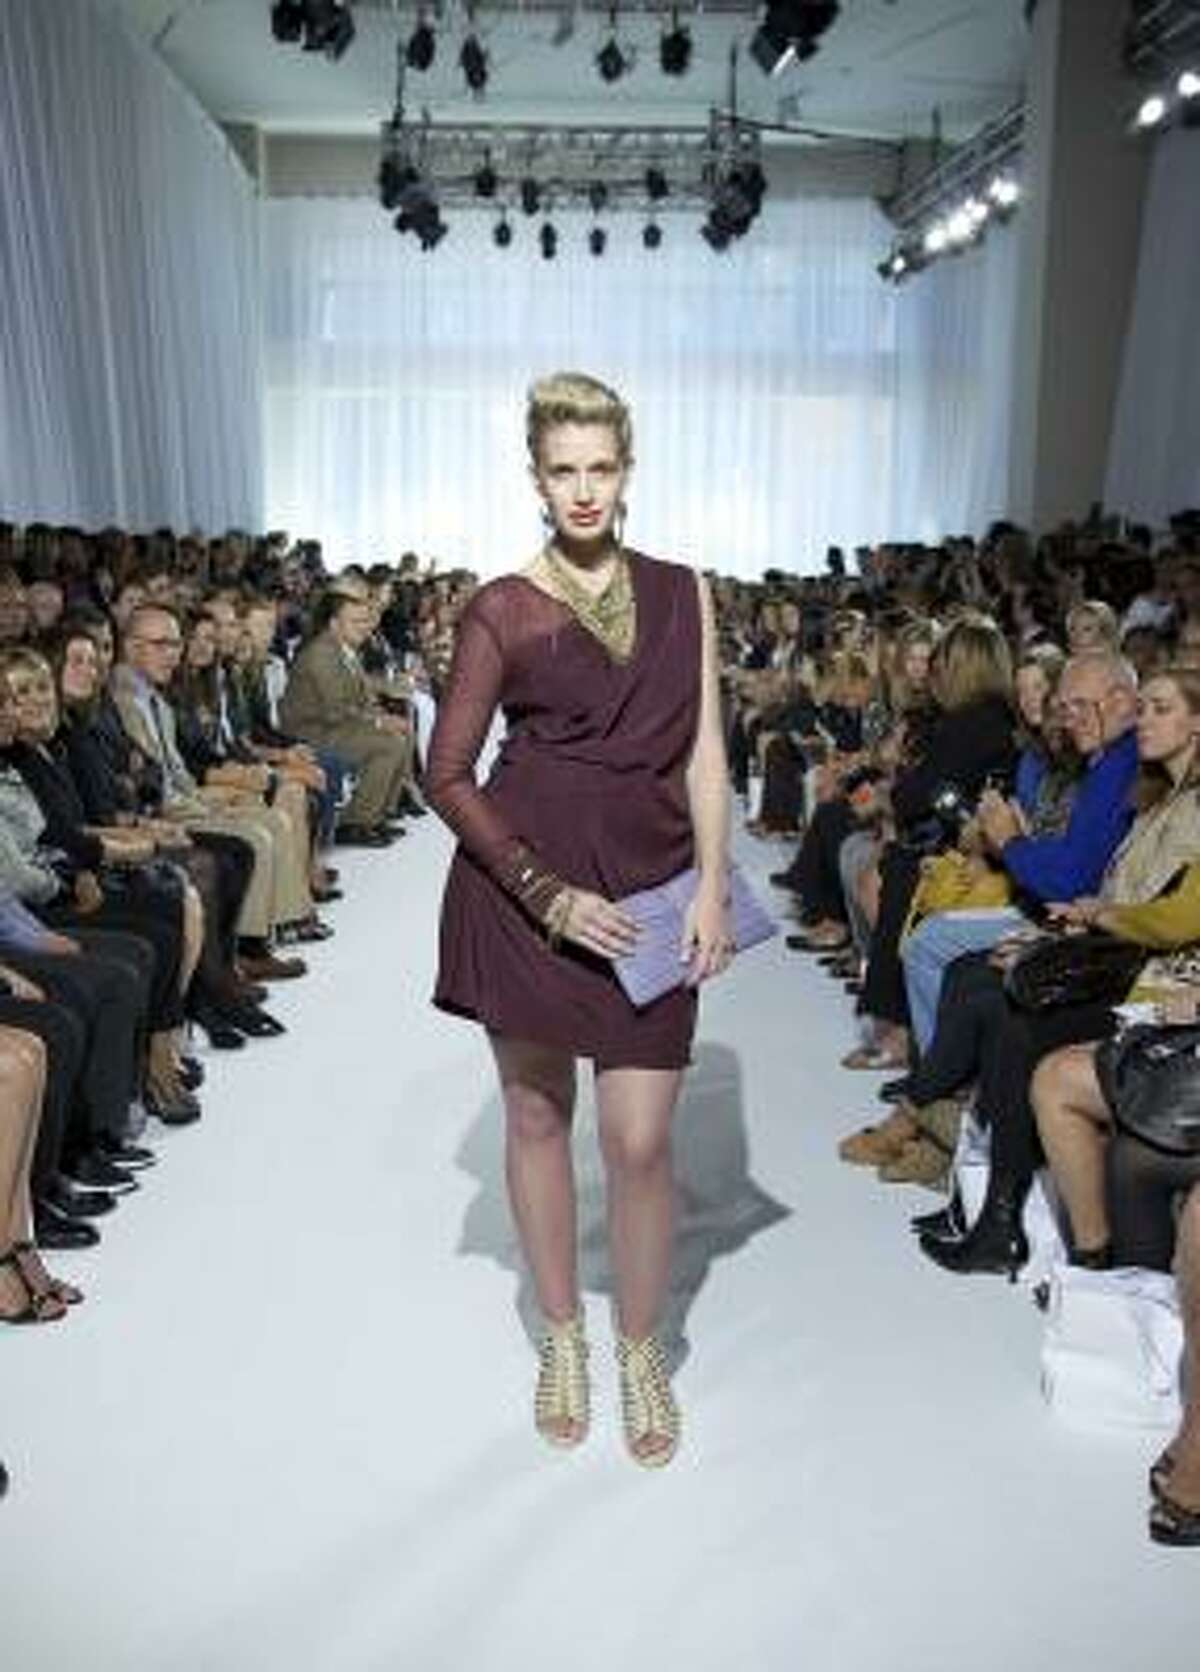 The OneStopPlus.com show was the first of its kind at Fashion Week.